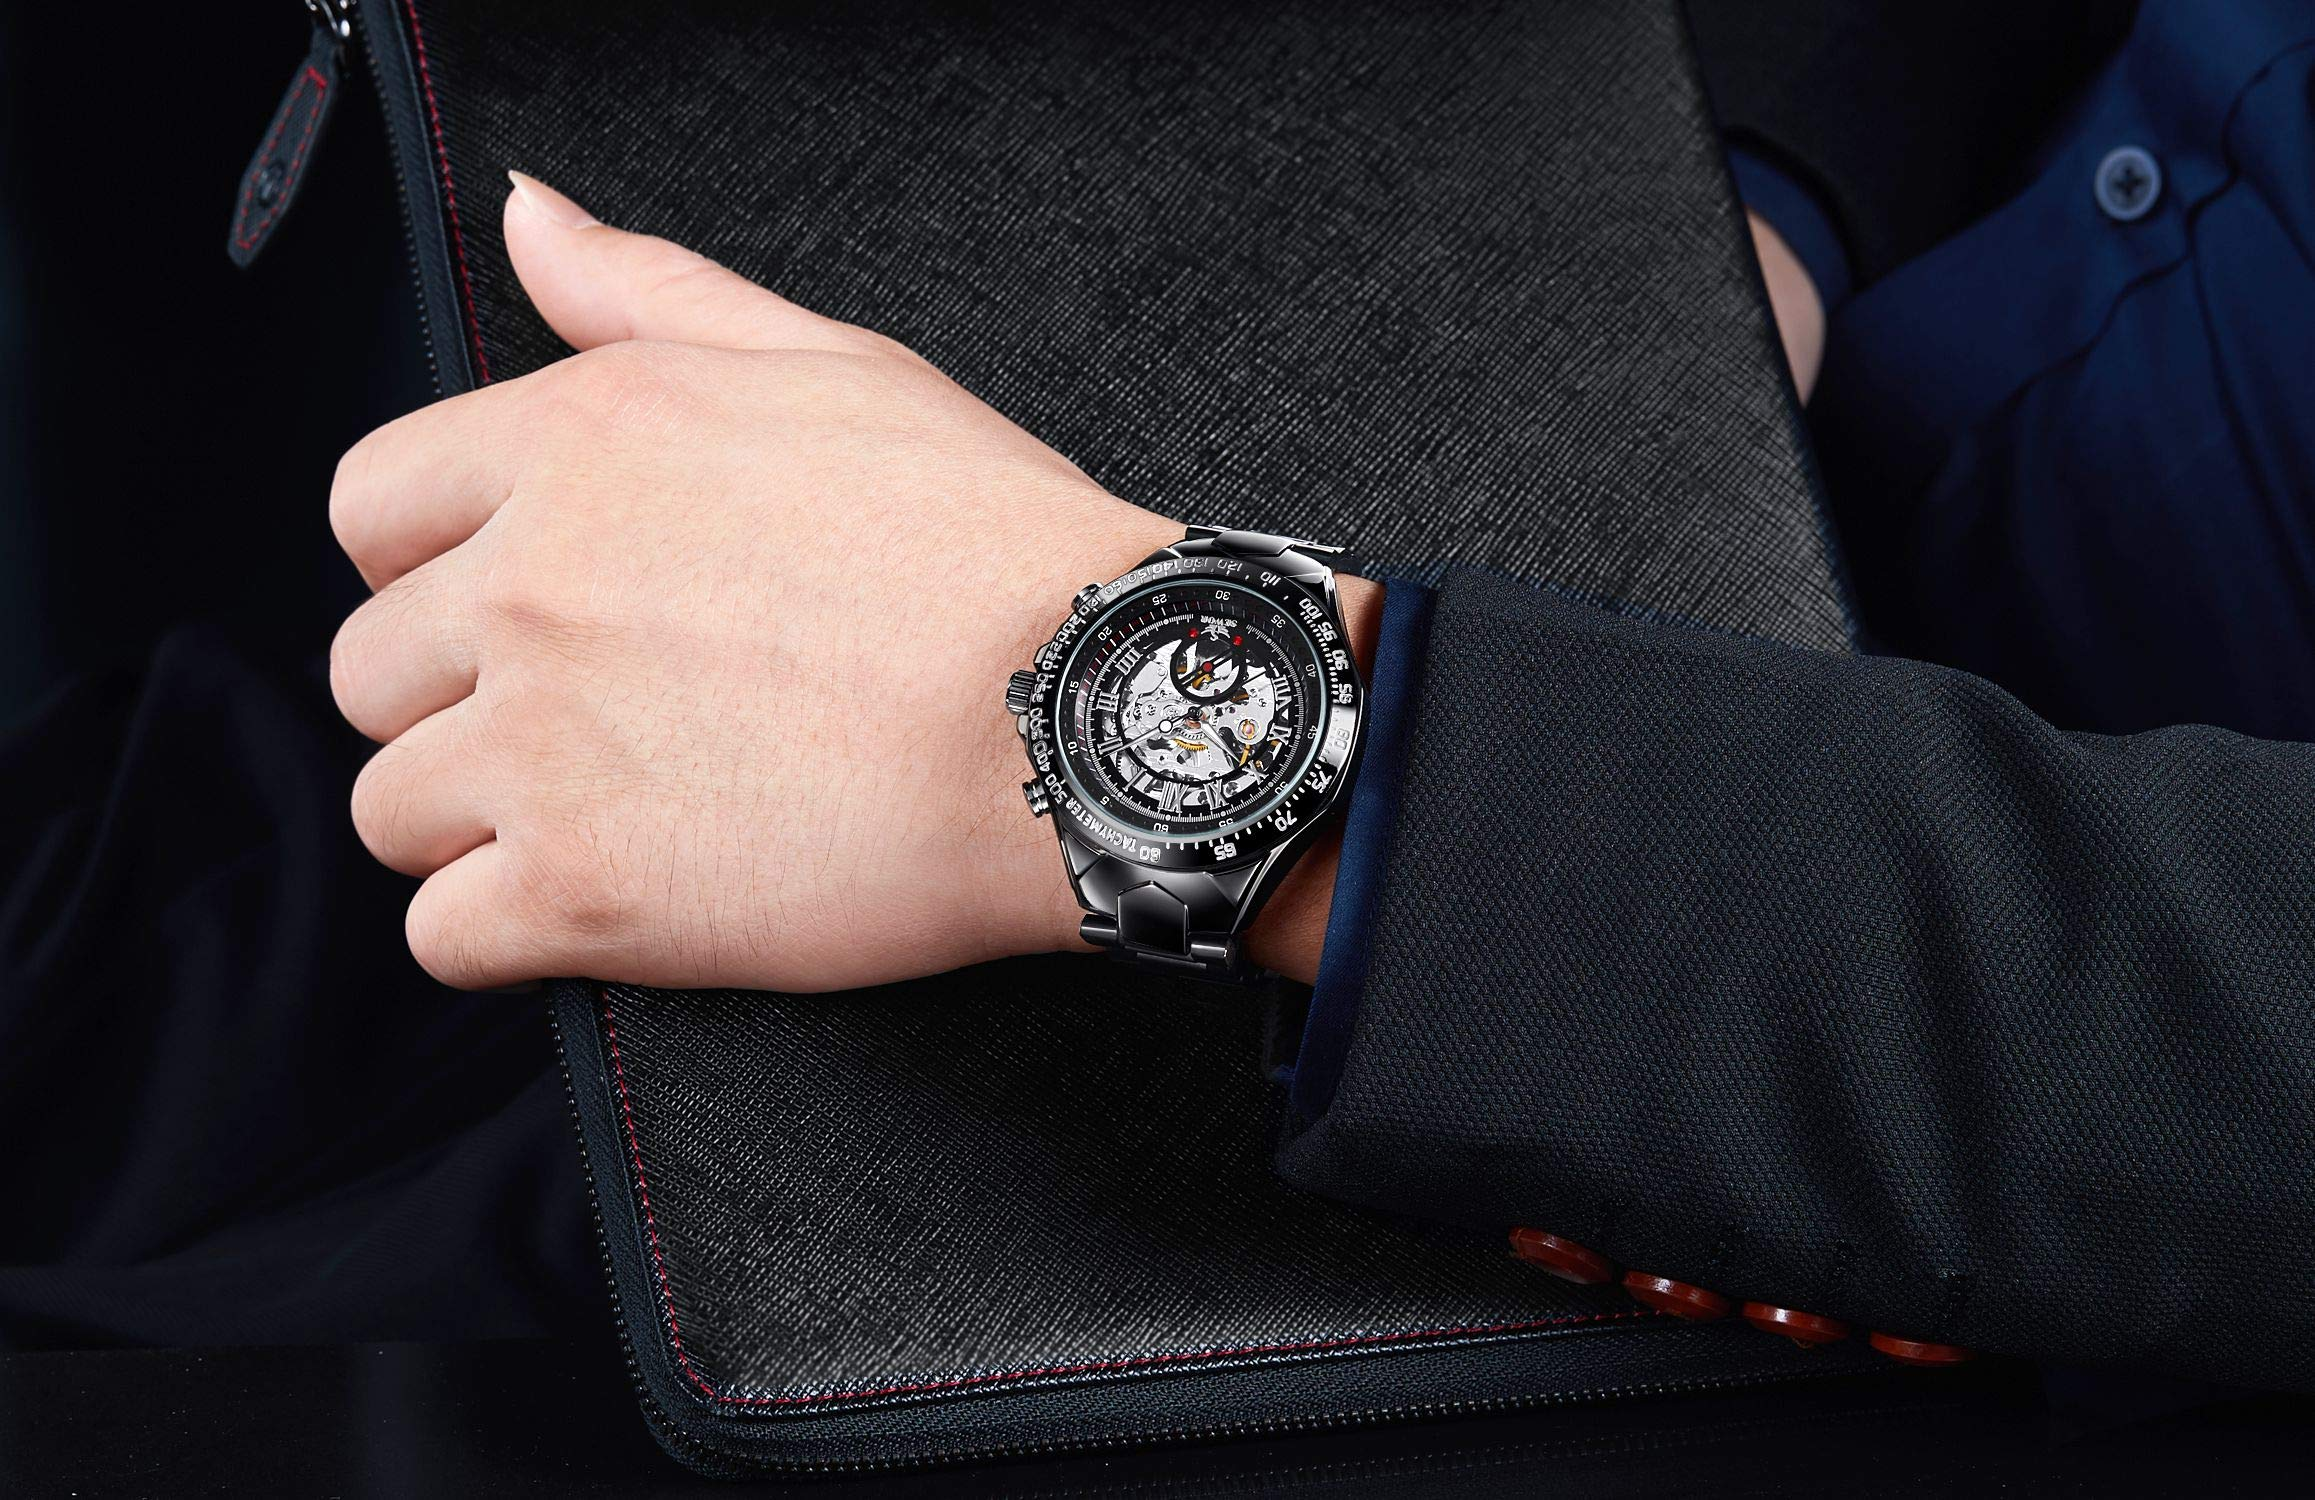 SEWOR Fashion Delicate Hollow Carving Mechanical Automatic Wrist Watch (Black)